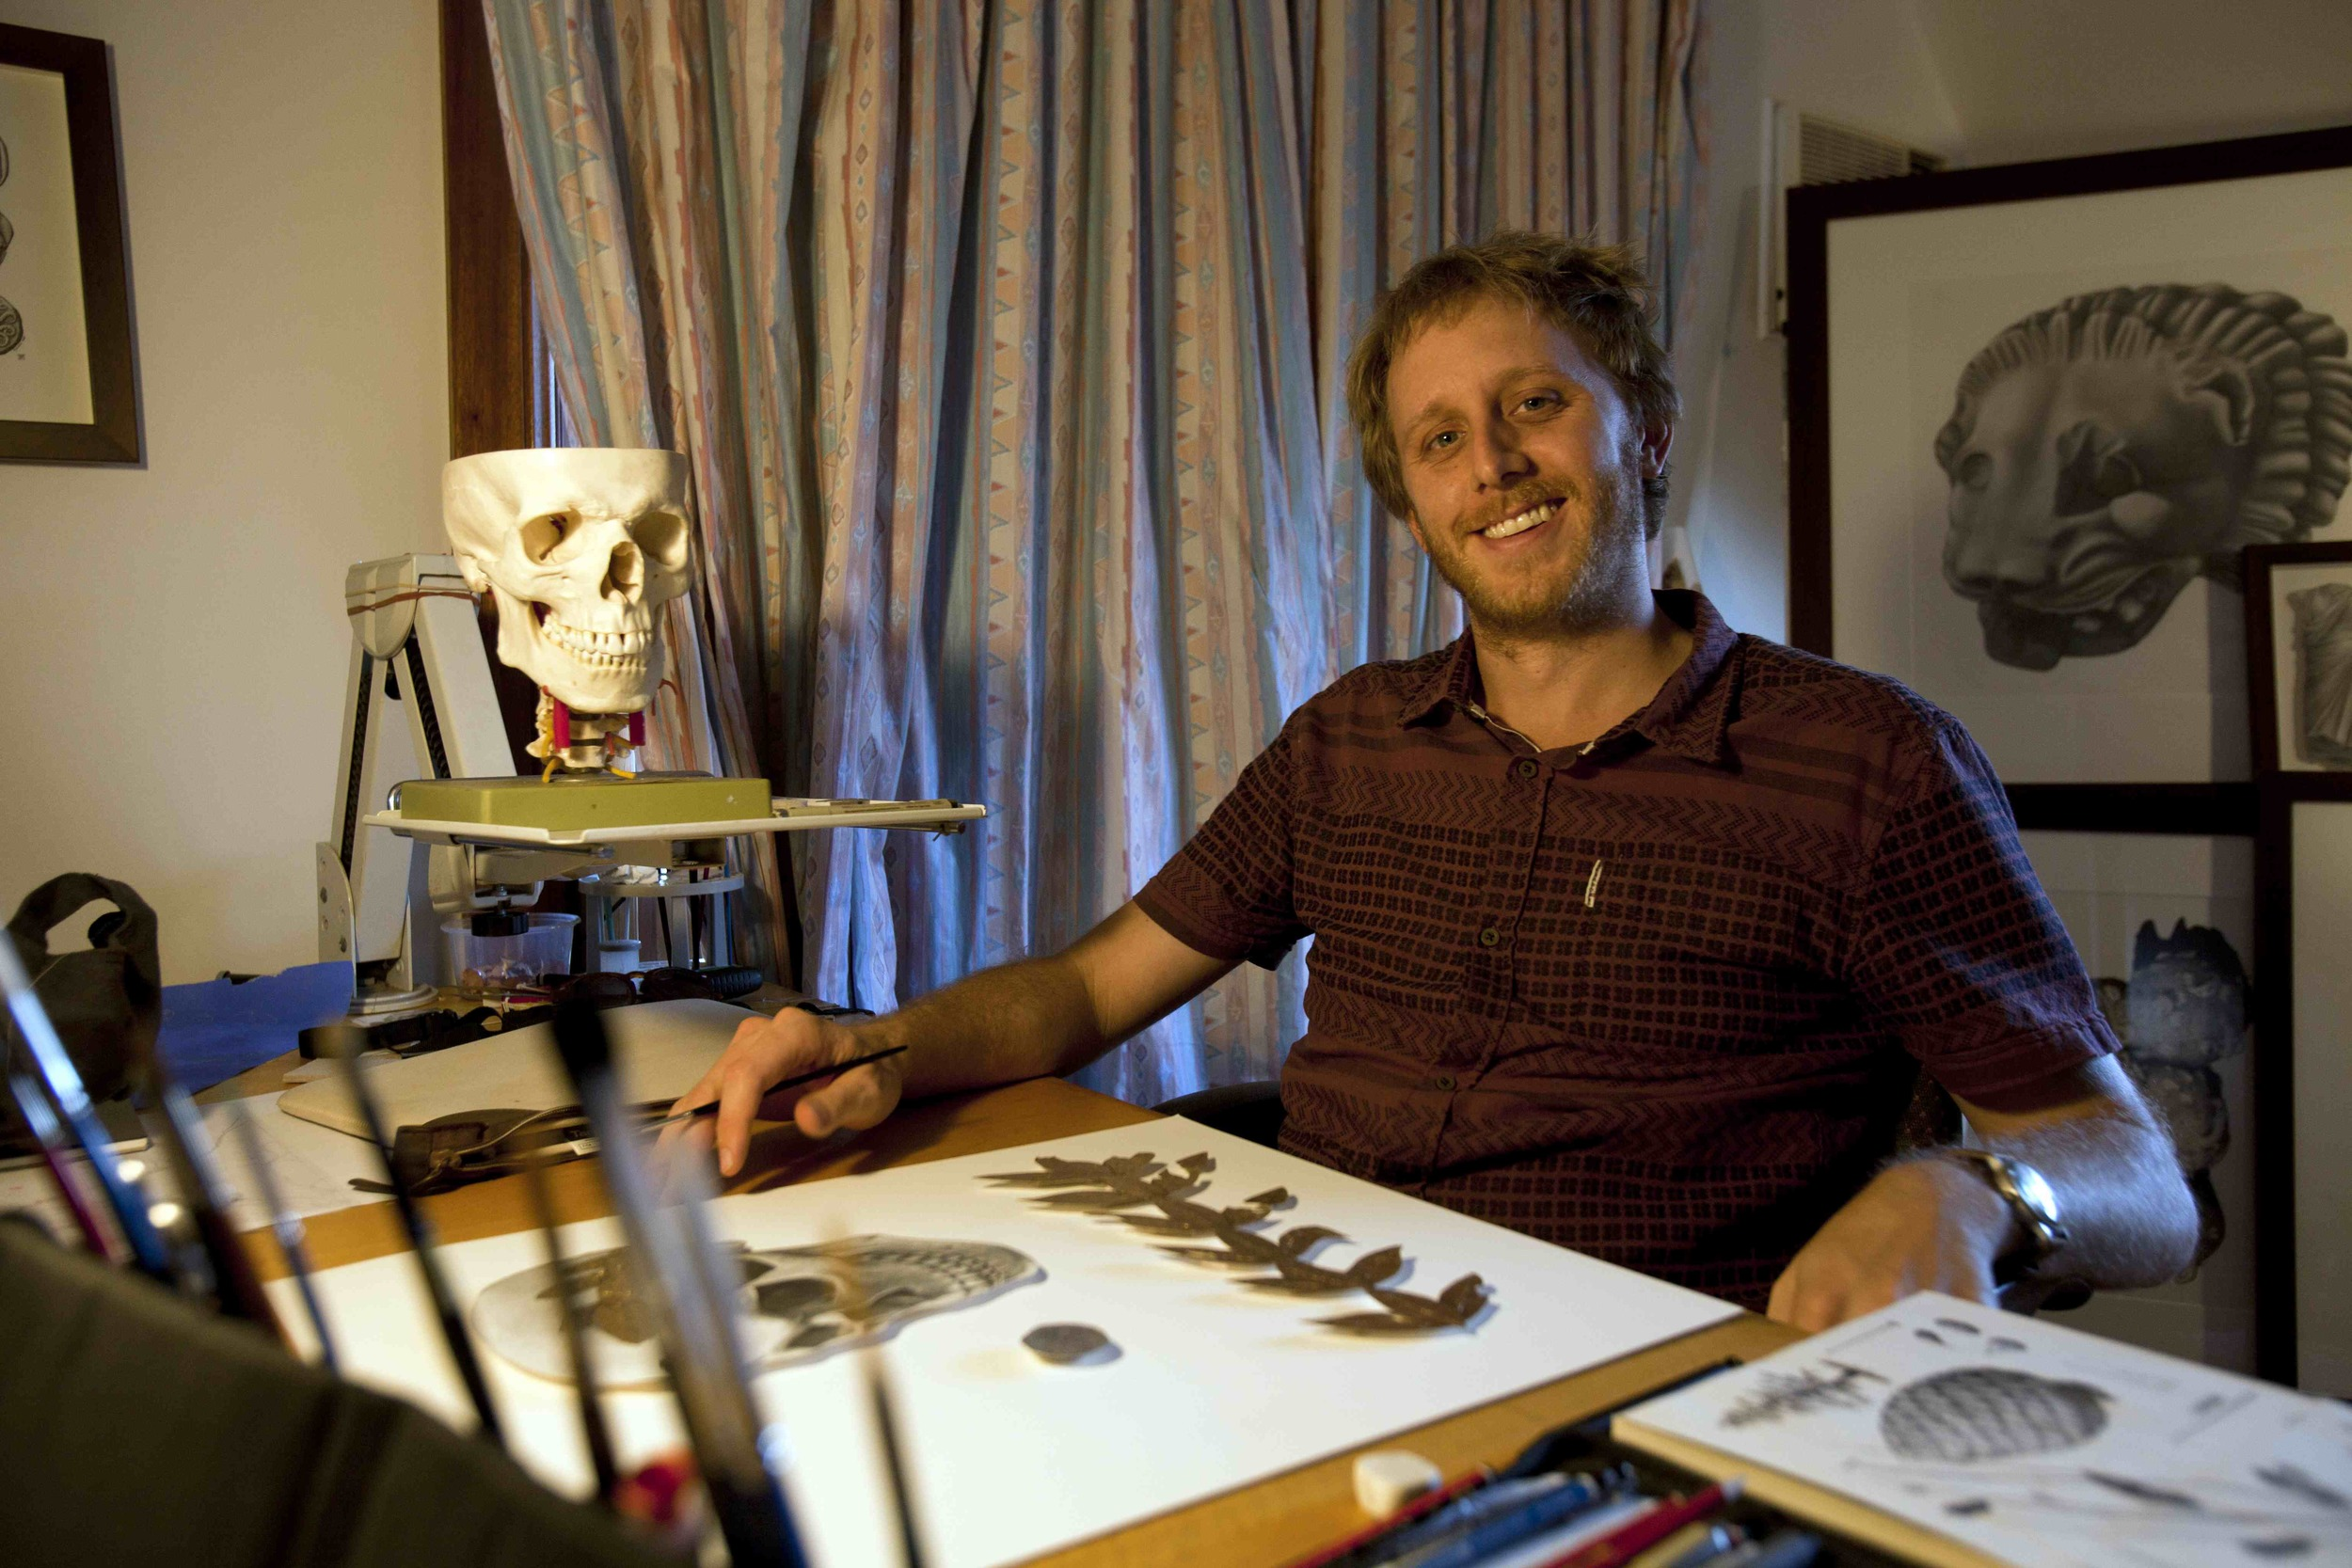 Angus at work in his studio